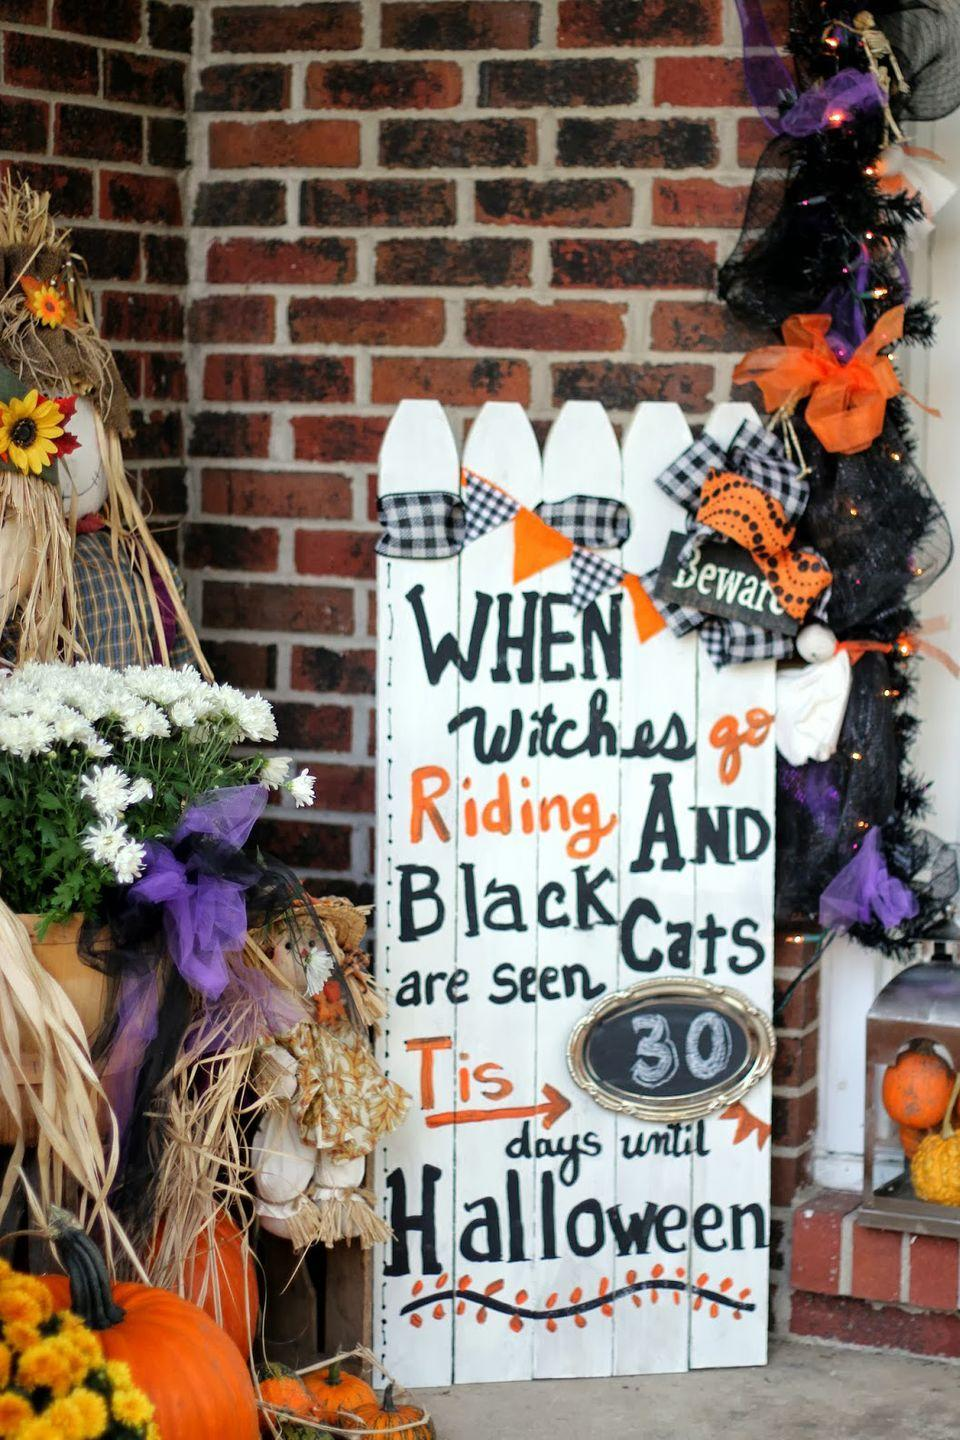 """<p>Made from picket fence pieces, this Halloween countdown sign is the perfect way to drum up excitement for the holiday. Use chalkboard paint where your numbers will go, so you can update it each day. </p><p><strong>Get the tutorial at <a href=""""http://priscillas2000.blogspot.ca/2013/10/picket-fence-halloween-countdown.html"""" rel=""""nofollow noopener"""" target=""""_blank"""" data-ylk=""""slk:Priscillas"""" class=""""link rapid-noclick-resp"""">Priscillas</a>.</strong> </p>"""